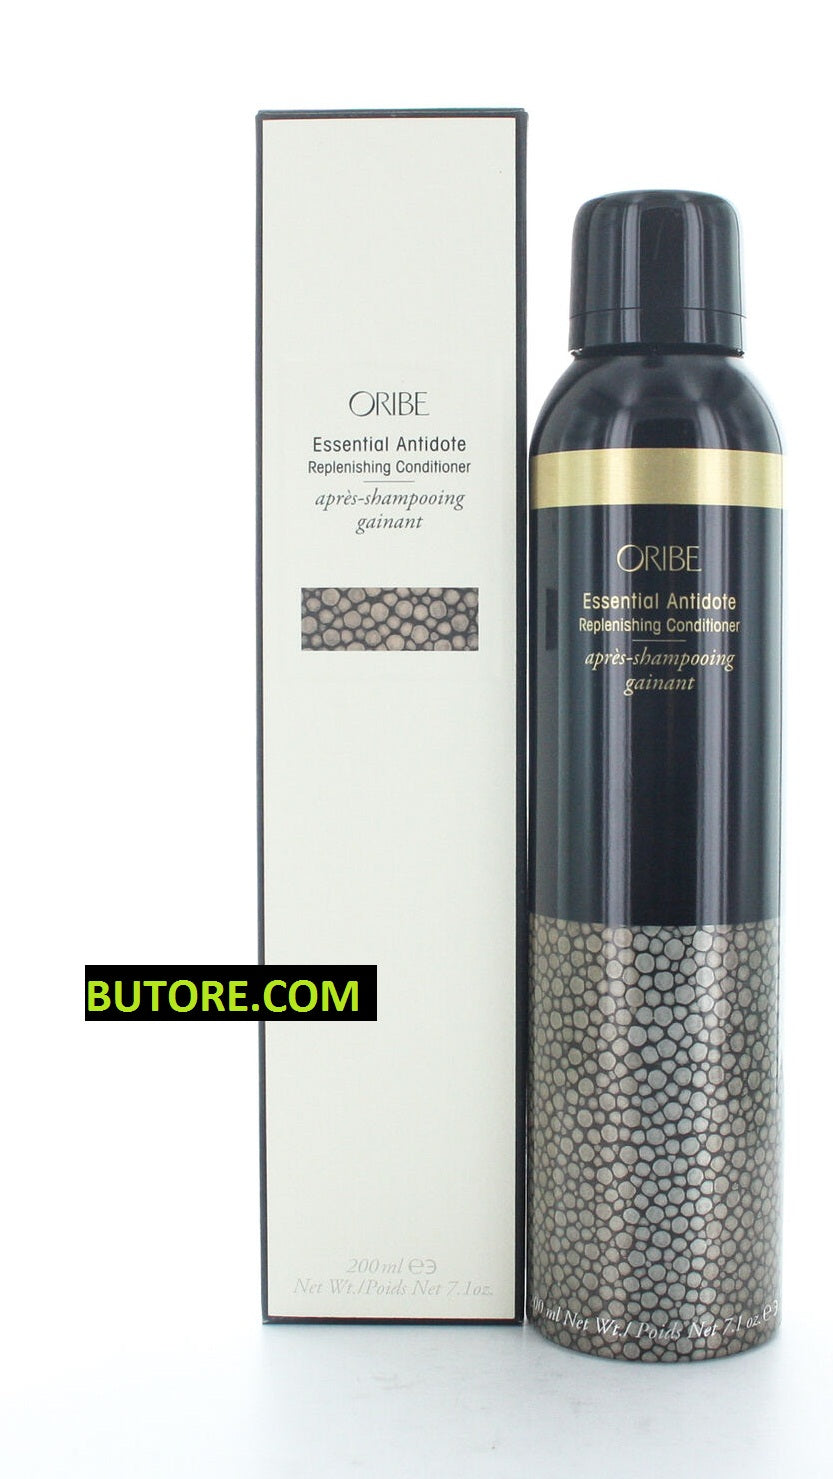 Oribe Essential Antidote Replenishing Conditioner 7.1oz